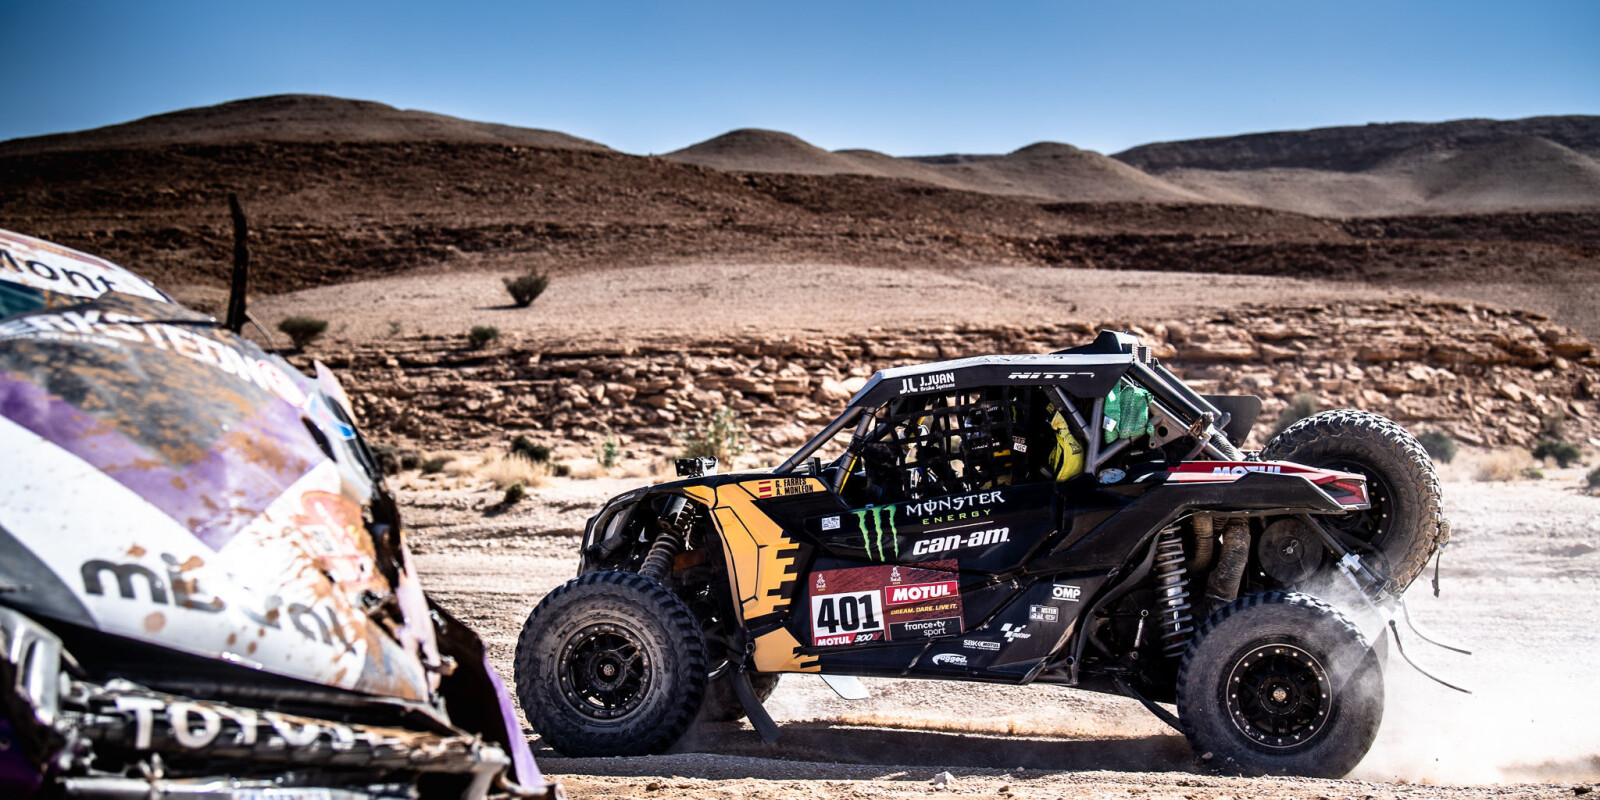 Images from stage 9 of the 2020 Dakar